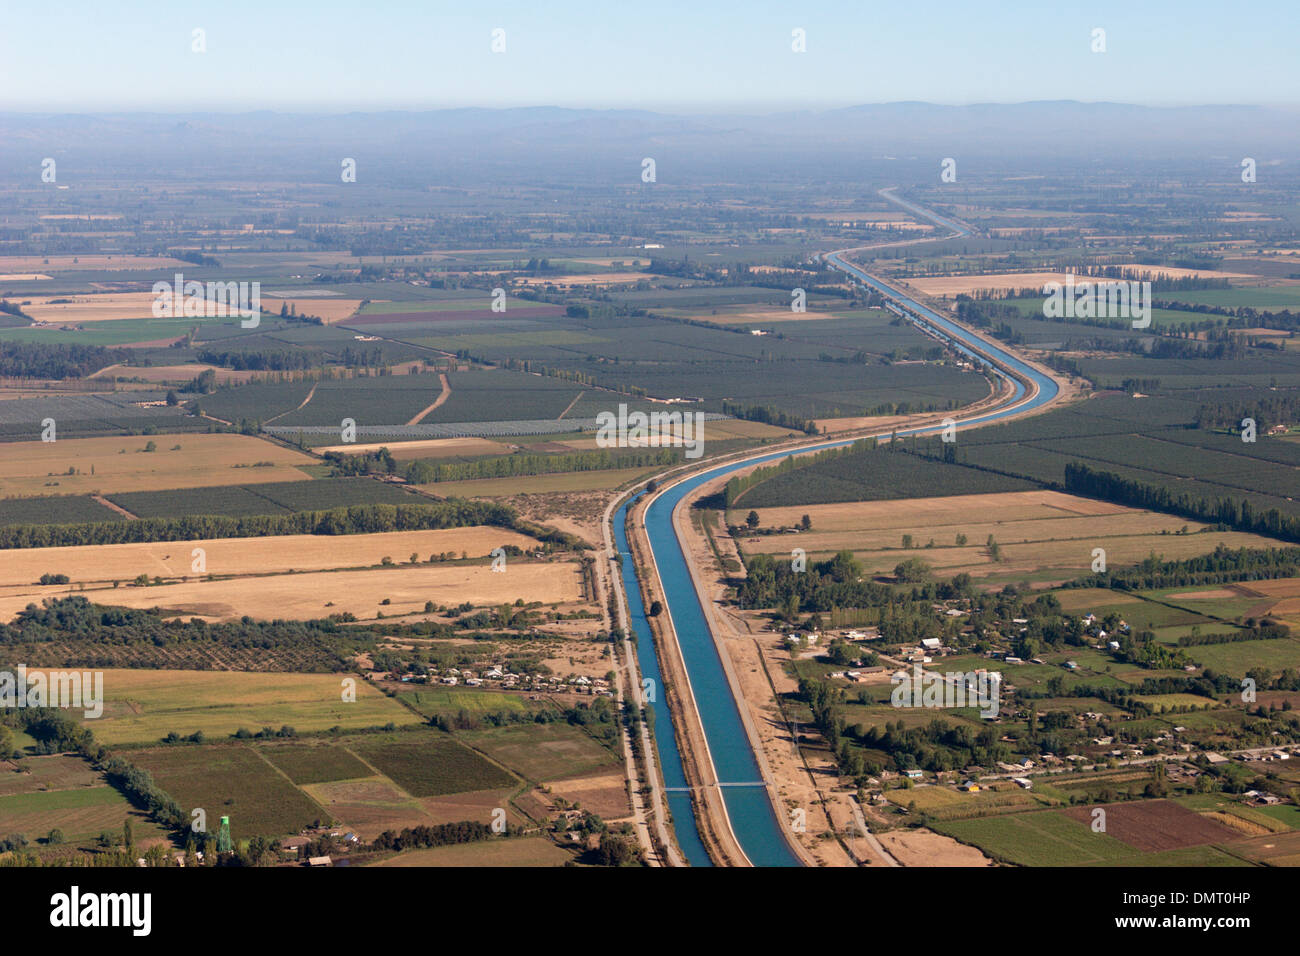 irrigation canal central Chile farming - Stock Image